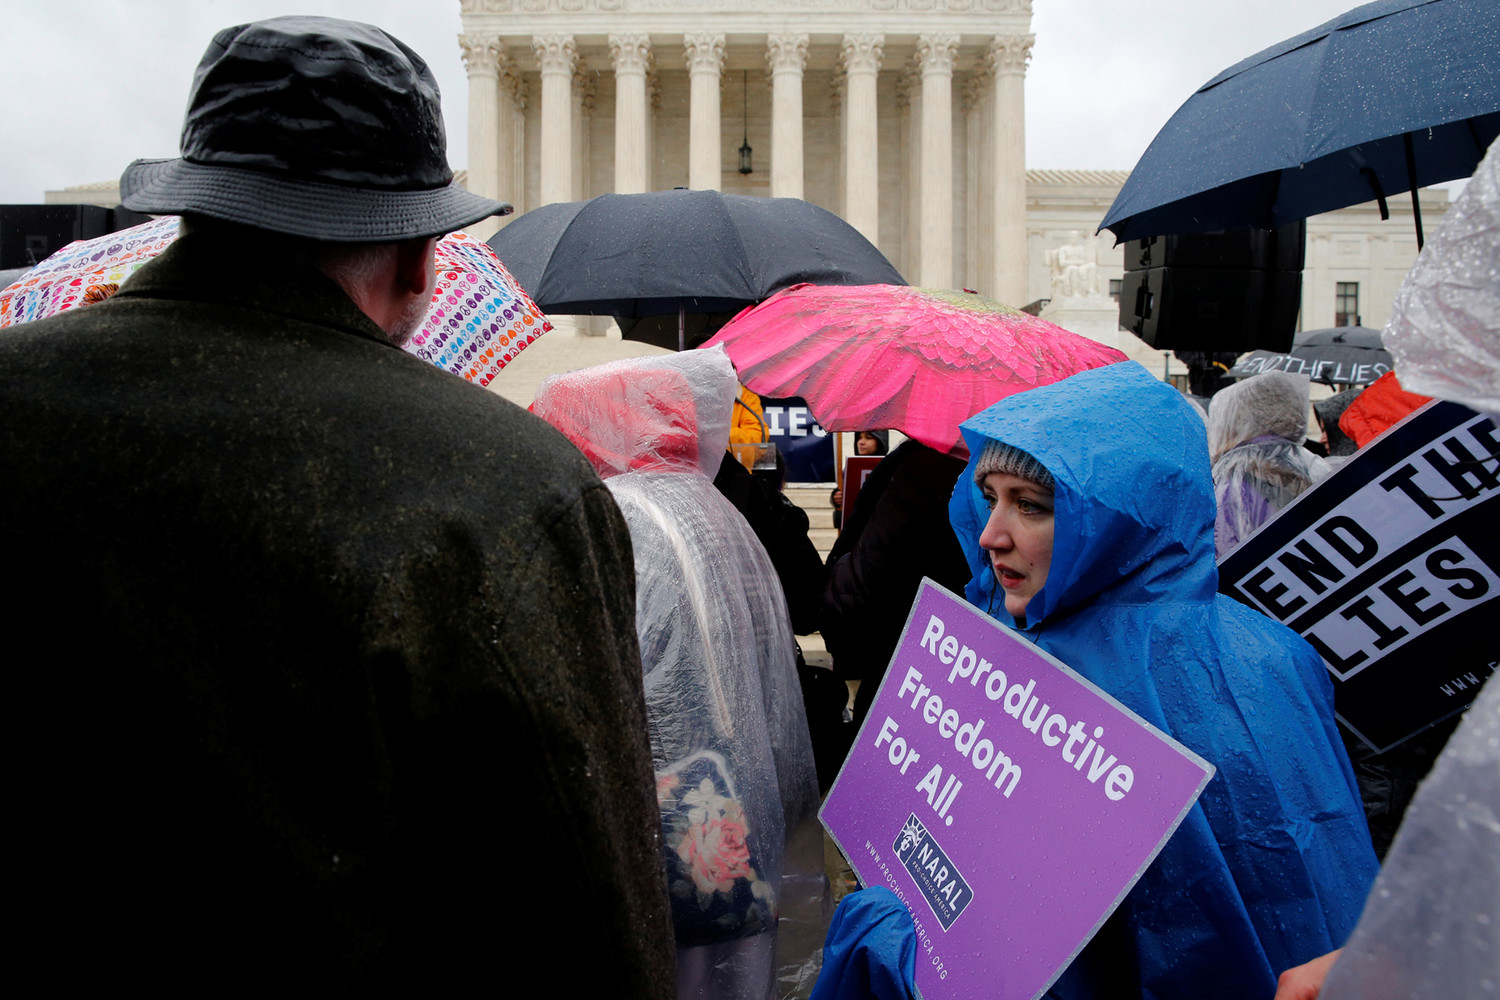 Pro-life advocates and a counter-demonstrator gather March 20 outside the U.S. Supreme Court in Washington as the court hears oral arguments in NIFLA v. Becerra, a case about freedom of speech at crisis pregnancy centers.